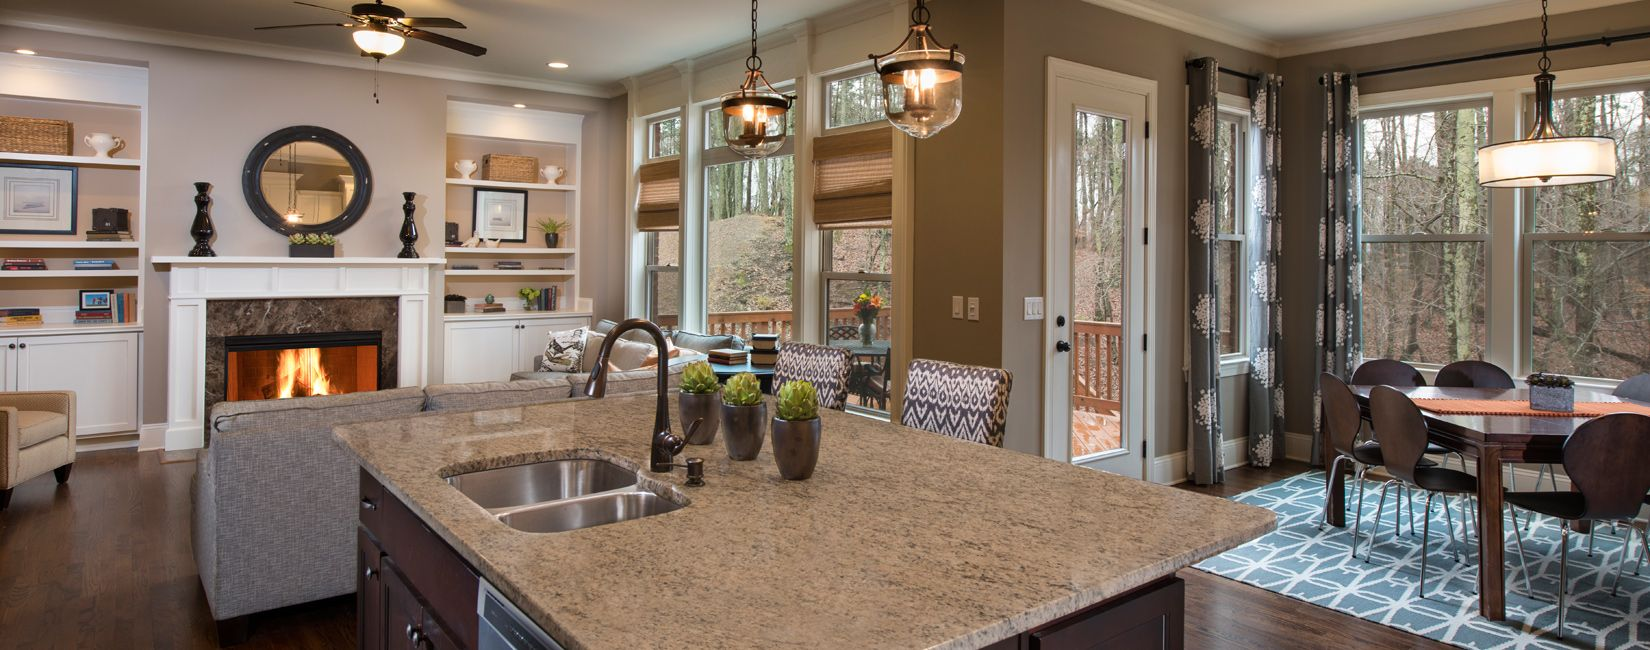 kitchen design chapel hill nc south grove by wieland homes and neighborhoods 671